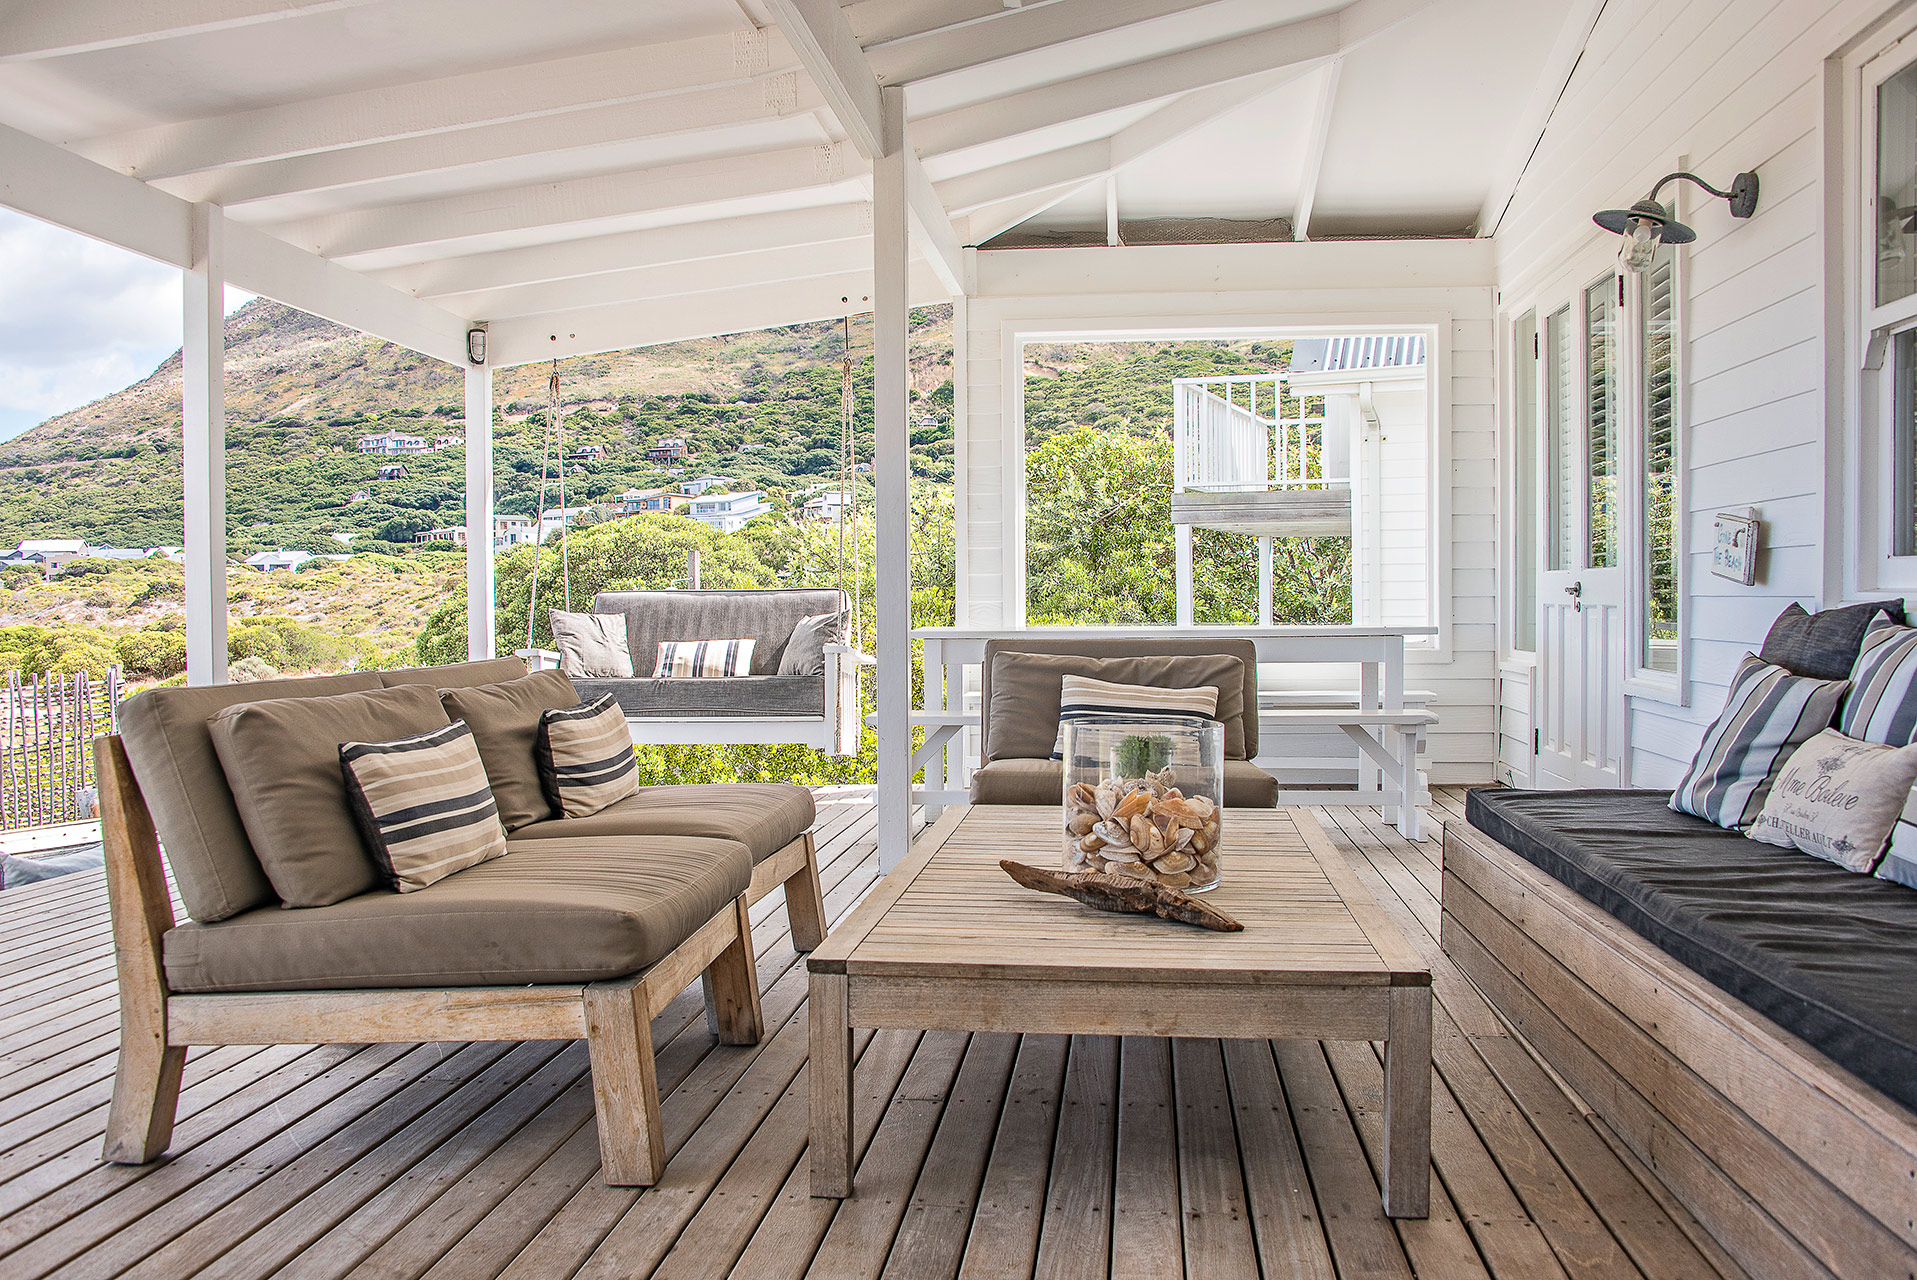 outdoor patio with roof and wooden furniture